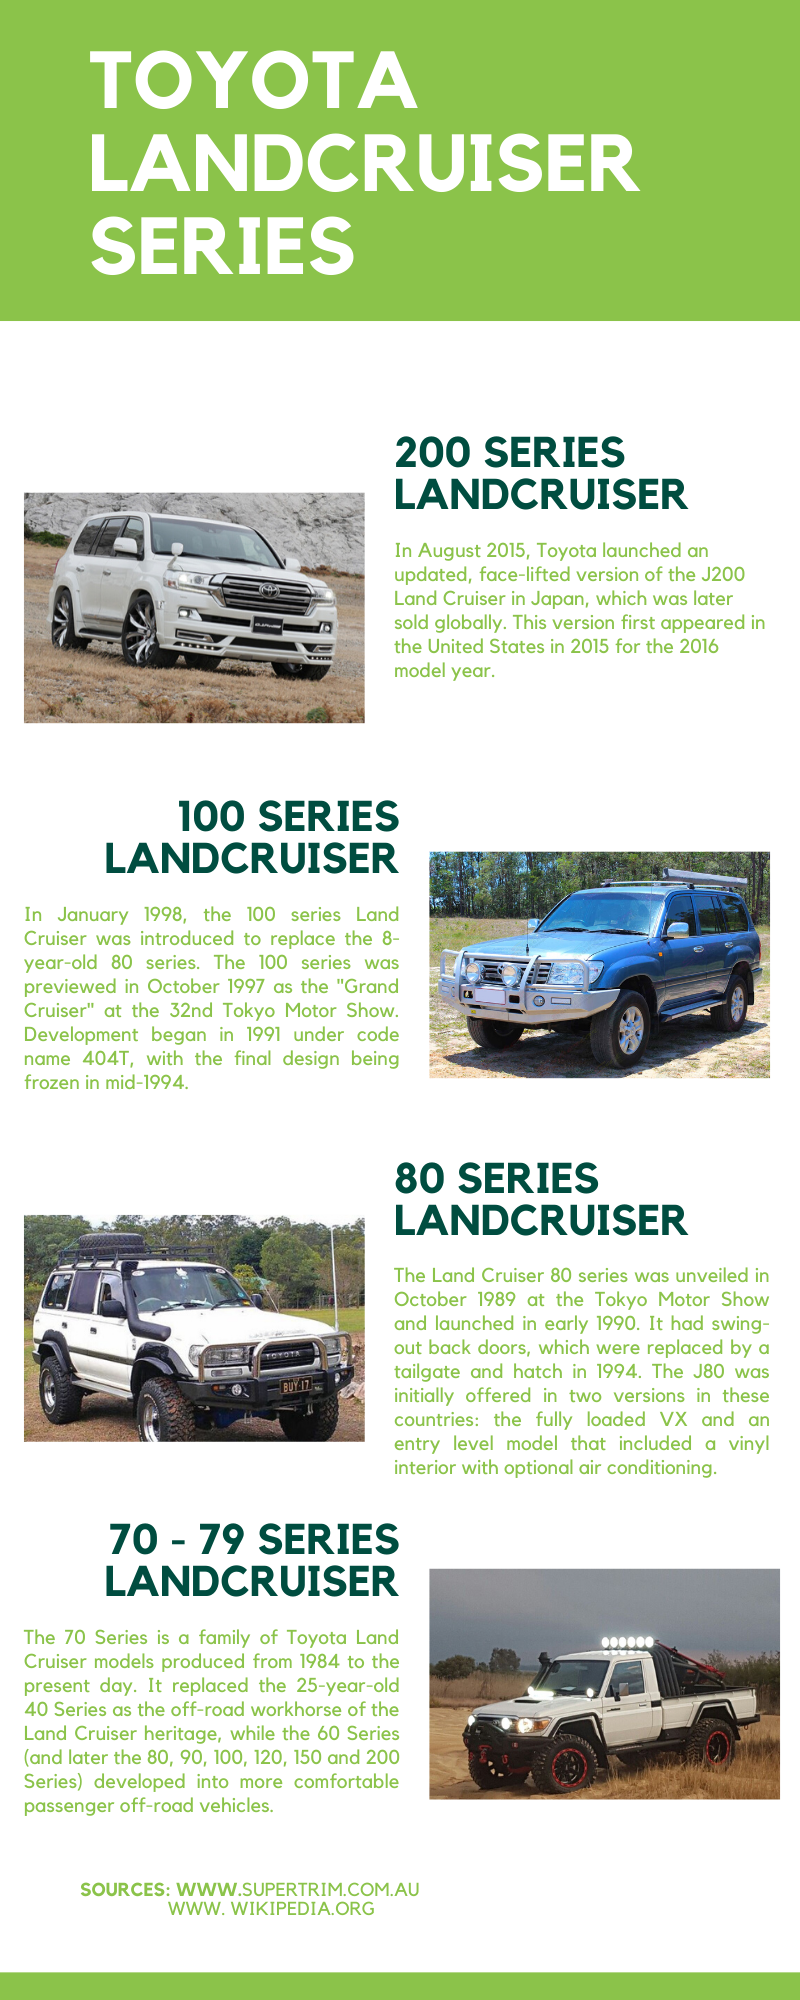 Landcruiser Is Toyota S Longest Running Series Of Models Its Reliability And Longevity Has Led To Huge Popul In 2020 With Images Custom Car Seat Covers Land Cruiser Carseat Cover